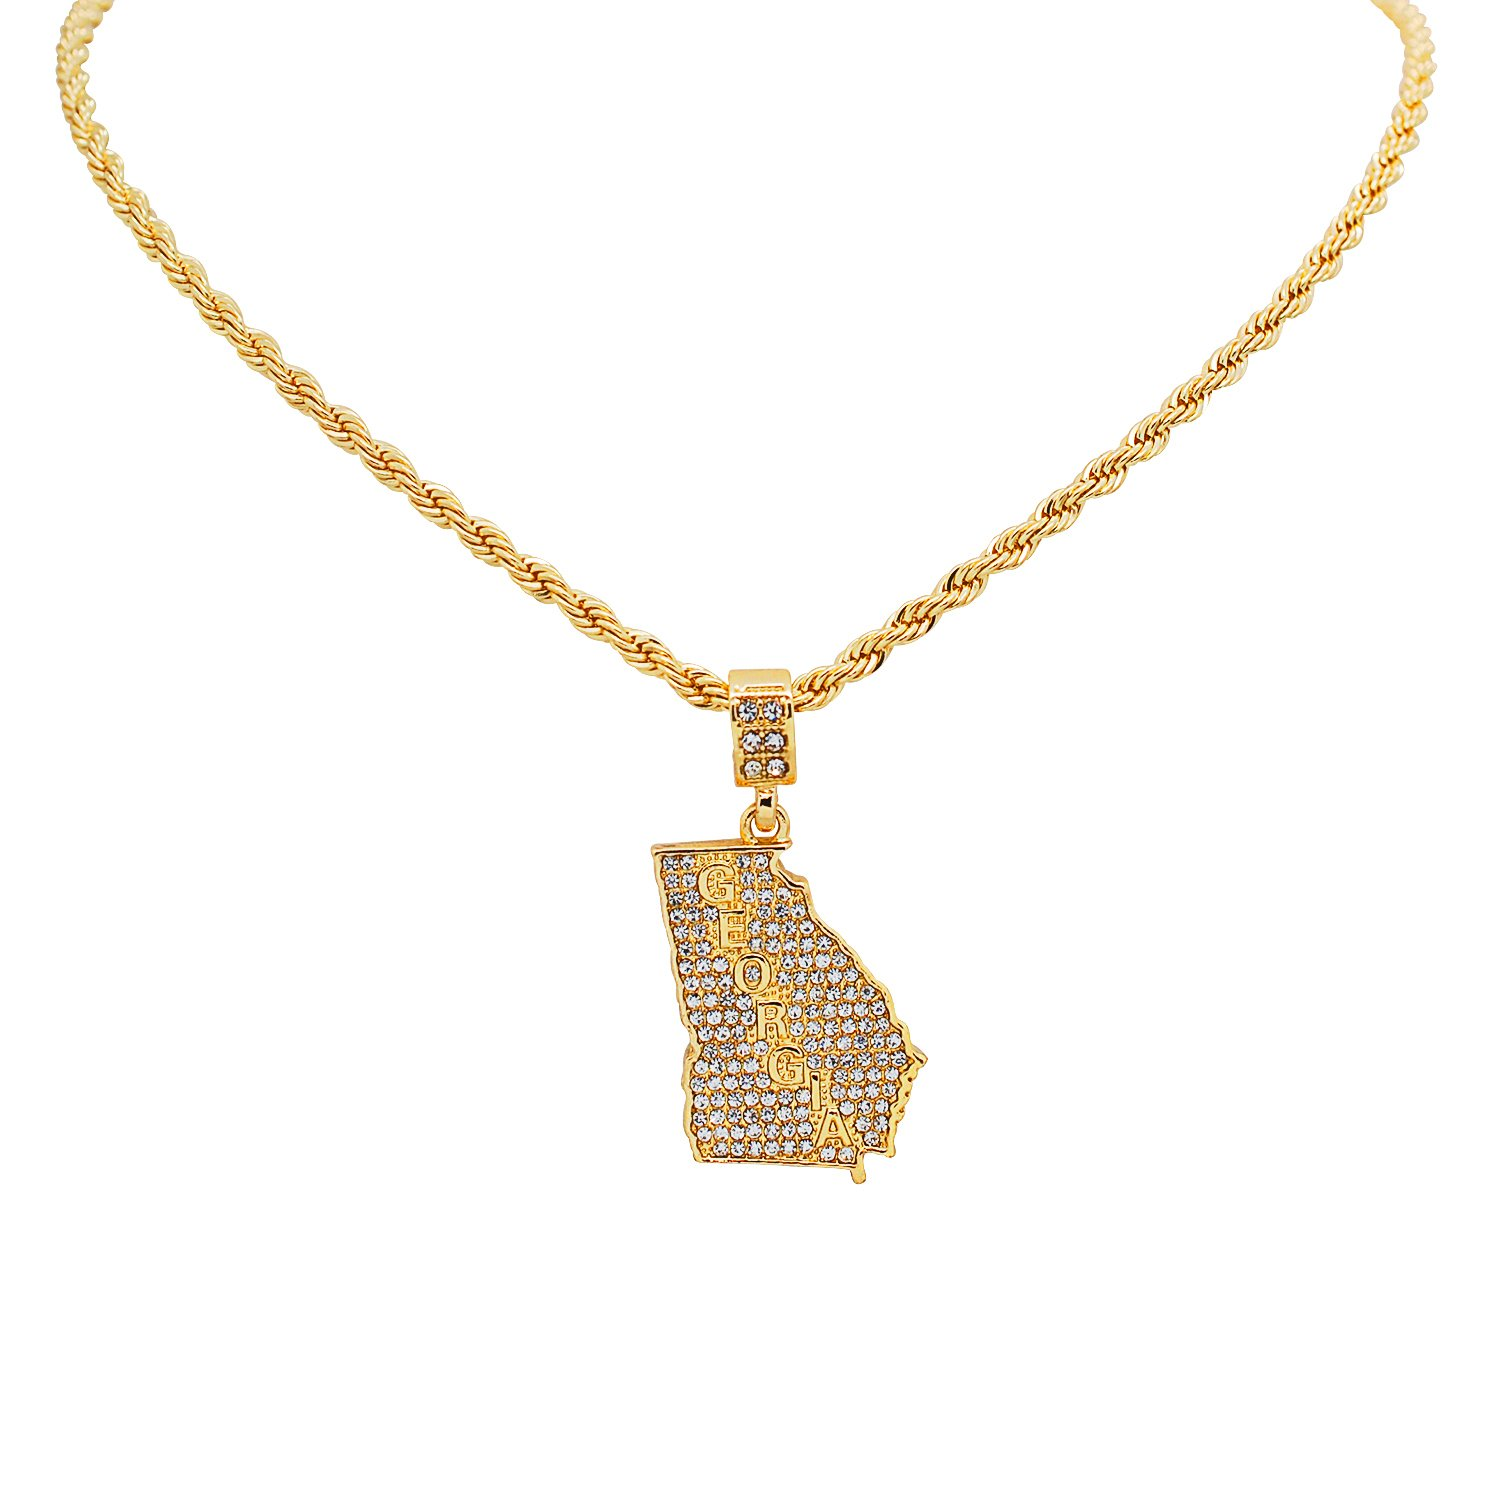 Yellow Gold-Tone Hip Hop Bling Simulated Crystal Peach State Georgia Map Pendant with 24 Tennis Chain and 24 Rope Chain